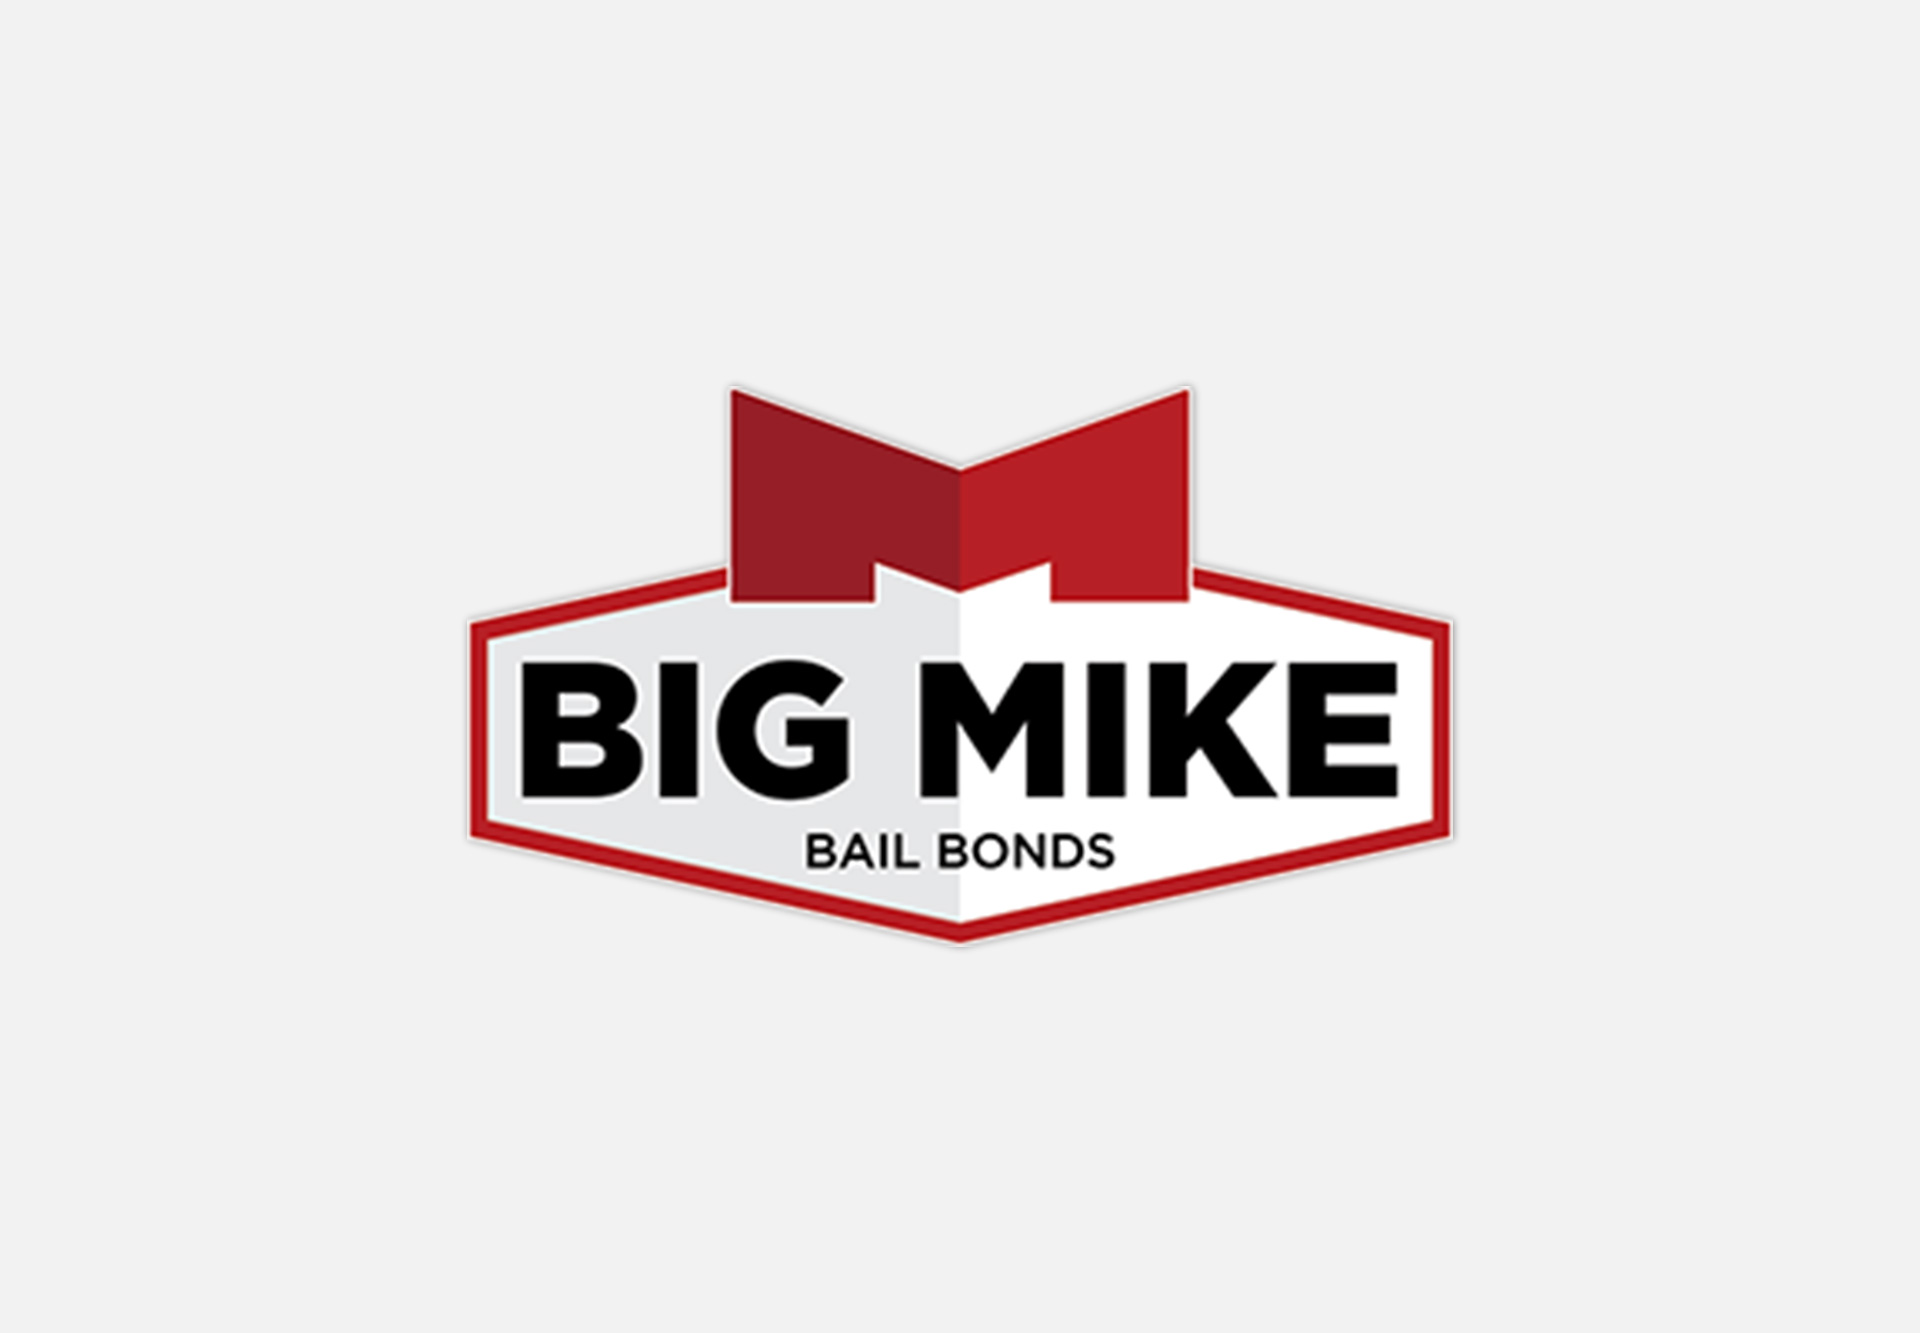 Bail Bond for a DUI or DWI in NC – Big Mike Bail Bonds